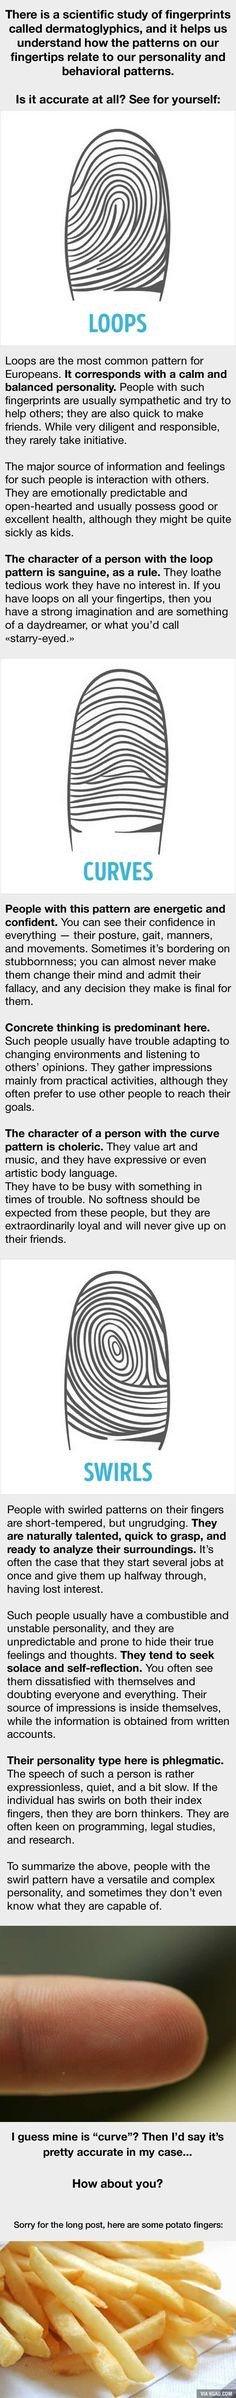 Dermatoglyphics - what your fingerprints say about who you are. I think this is pretty accurate for my majority fingerprint type. Weird Facts, Fun Facts, Random Facts, Types Of Fingerprints, Welcome Letters, Palm Reading, Knowledge And Wisdom, Read Later, School